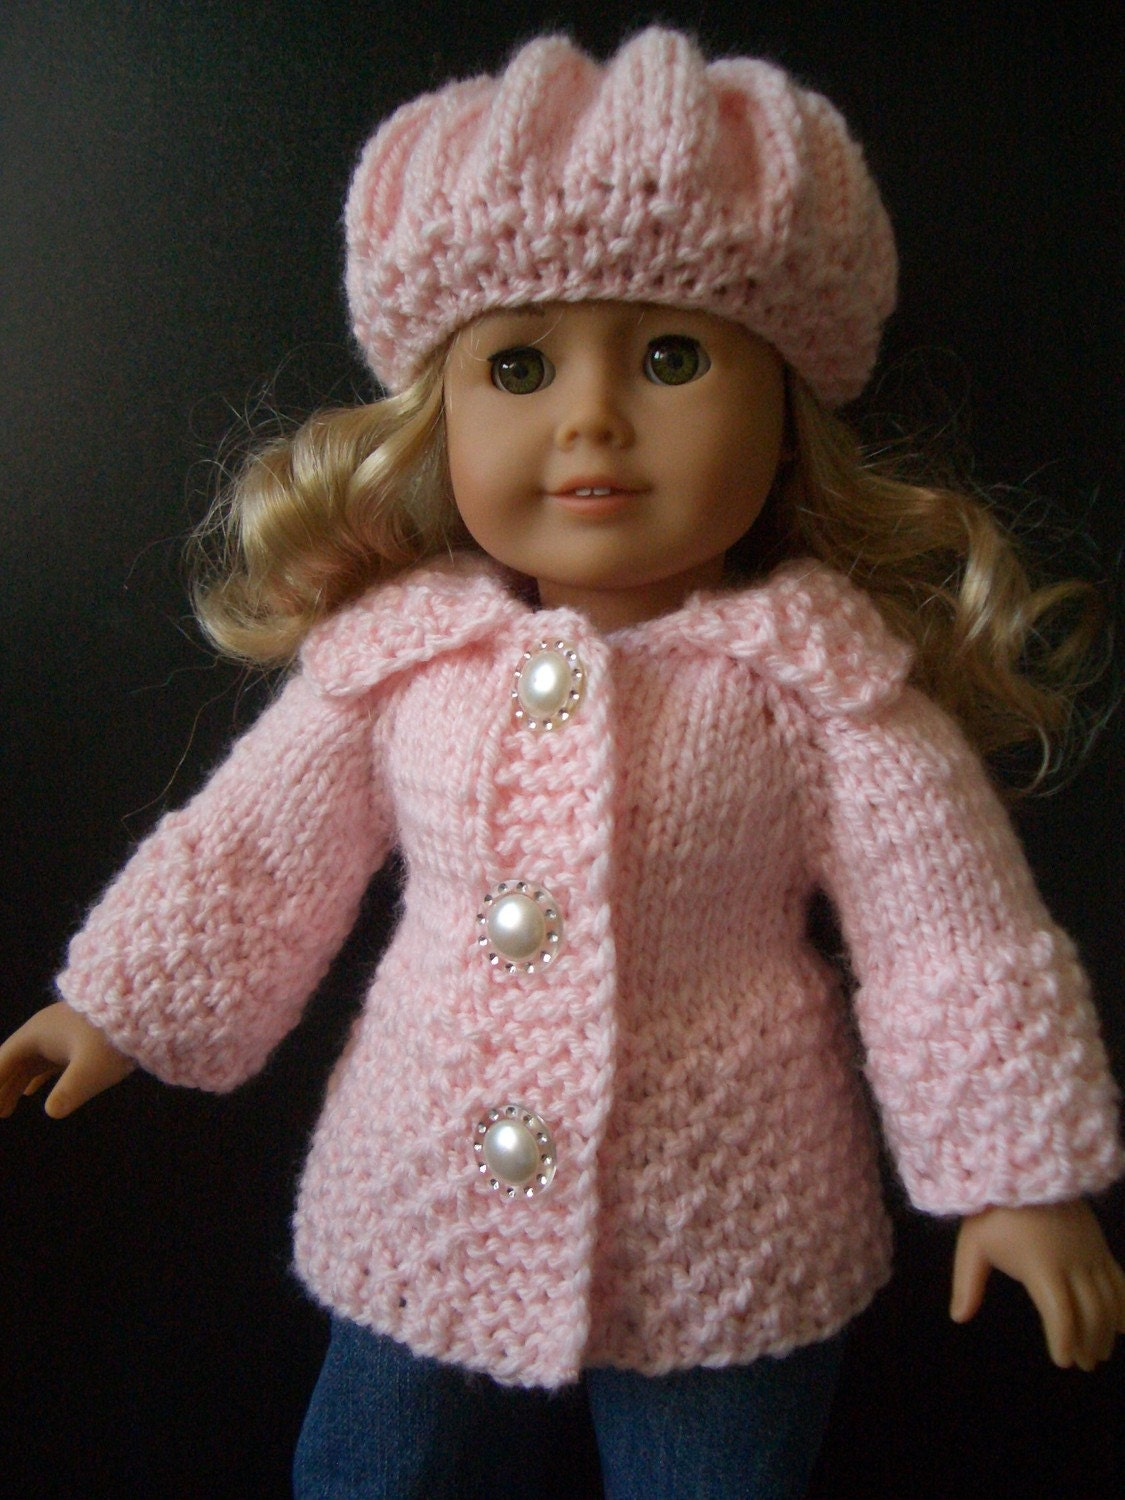 Knitting Patterns For Ag Dolls : Knitting Pattern with VIDEO for AMERICAN GIRL 18 inch doll